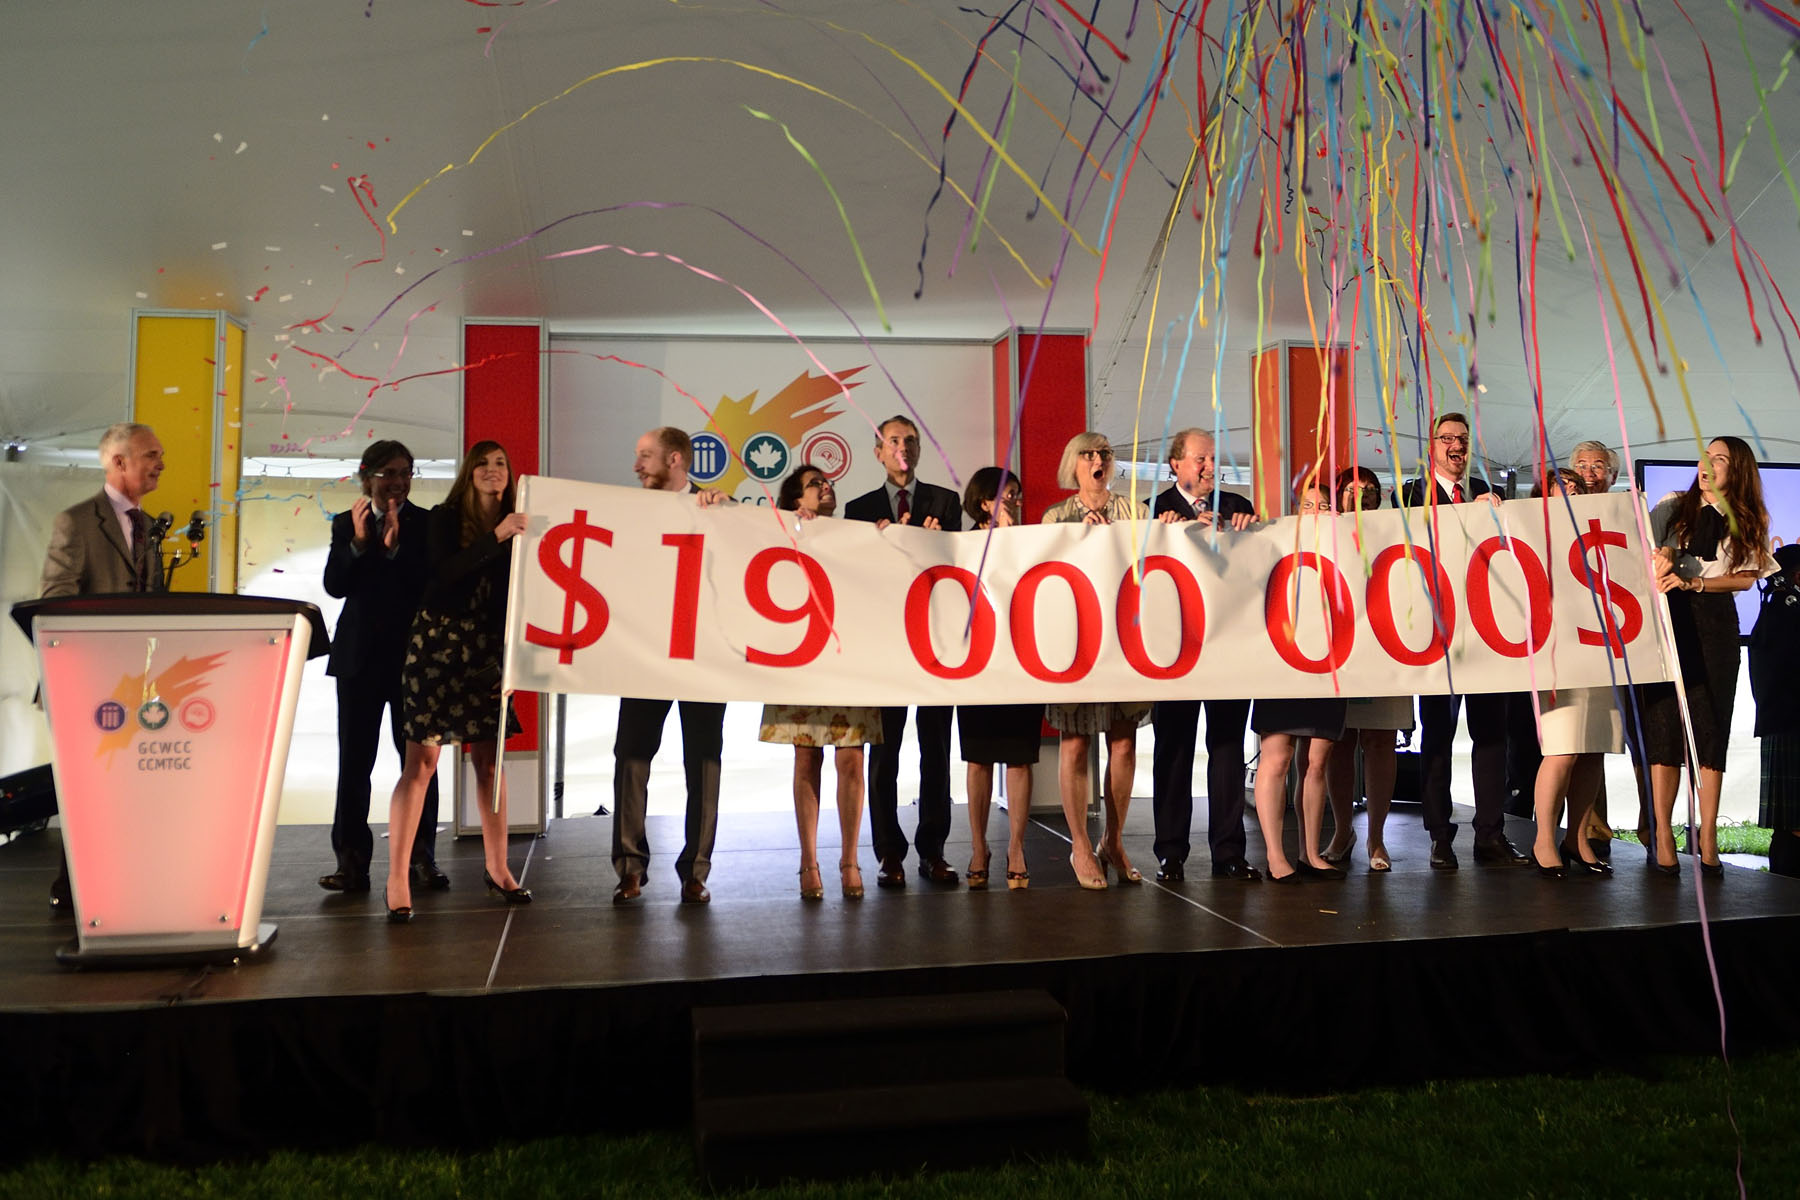 This year's goal for the National Capital Region is 19 millions dollars. The Charitable Campaign is managed by the United Way Ottawa and Centraide Outaouais on behalf of the Treasury Board of Canada Secretariat. In the National Capital Region, federal employees have contributed to annual fundraising campaigns since 1945.